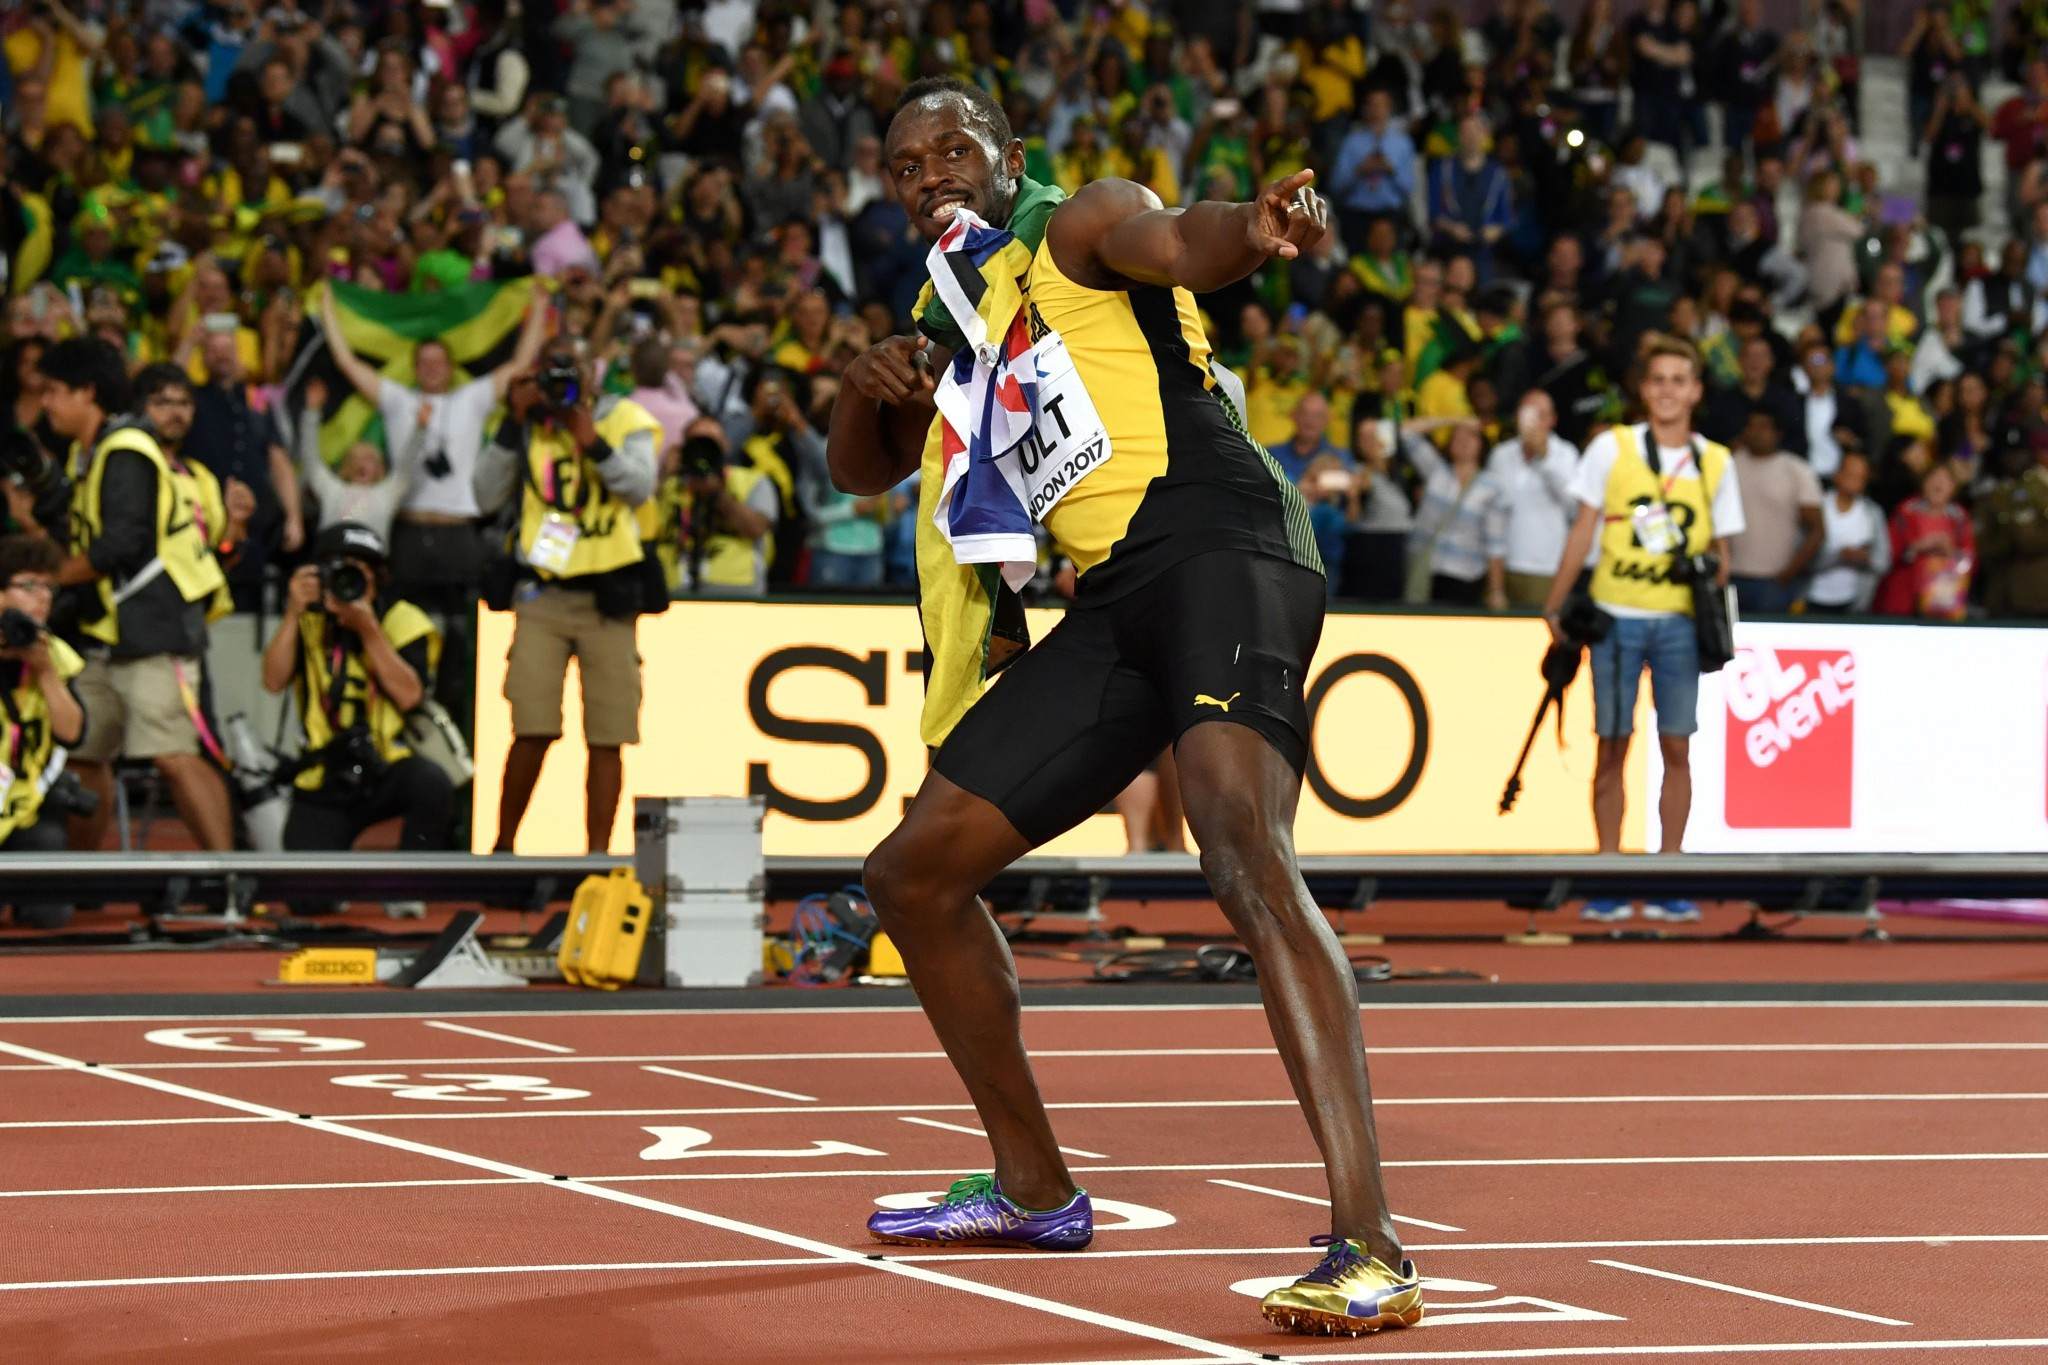 It was Usain Bolt who was still commanding all the attention after his third place finish ©Getty Images